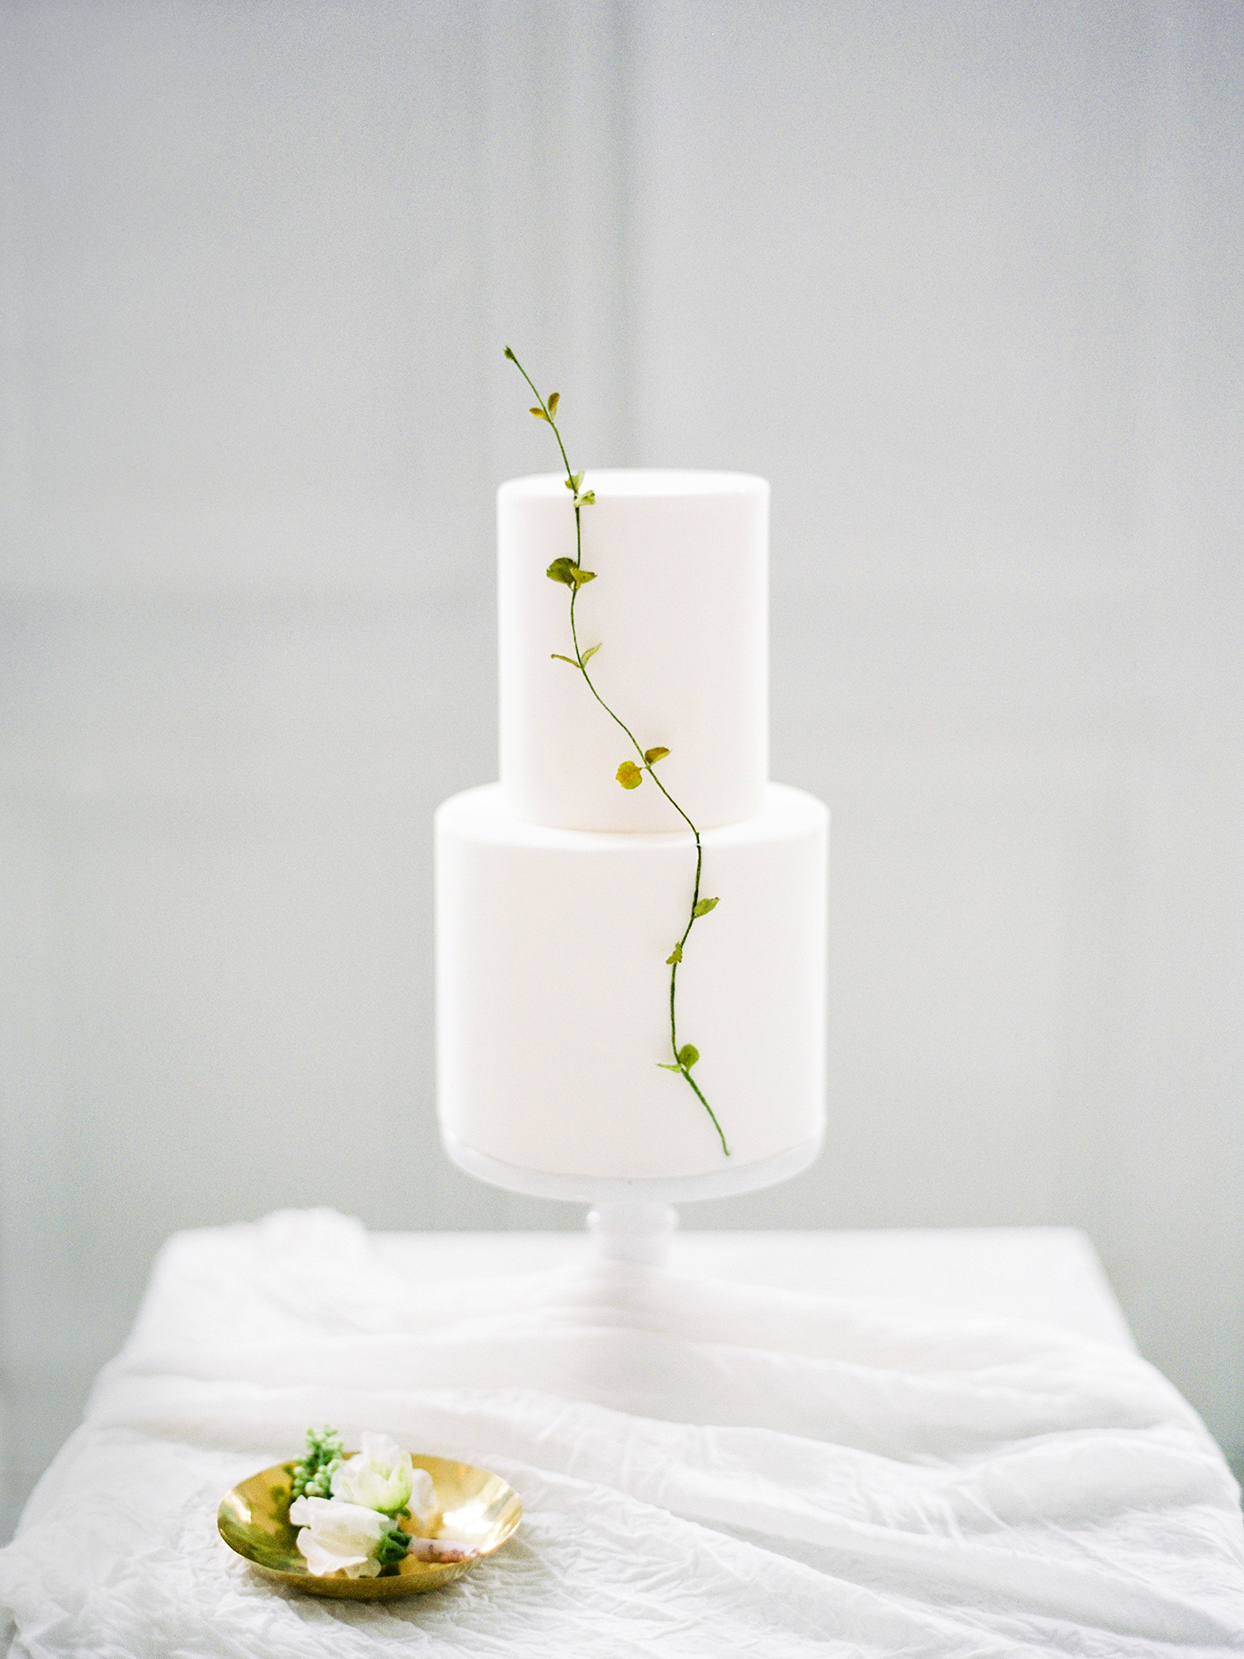 minimalist white two tier cake with small swivel sprig